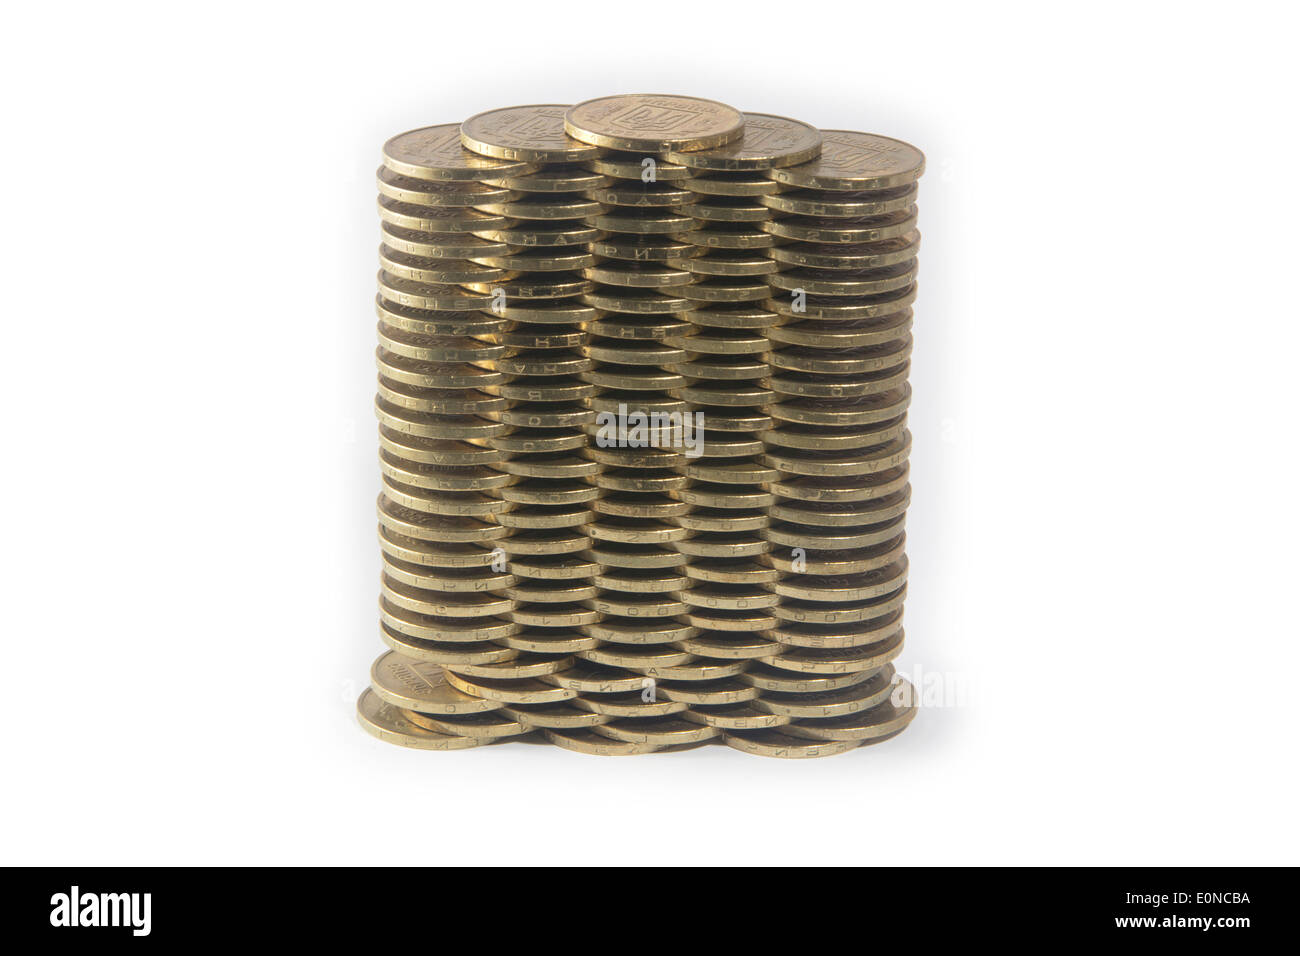 Coins by the levels - Stock Image